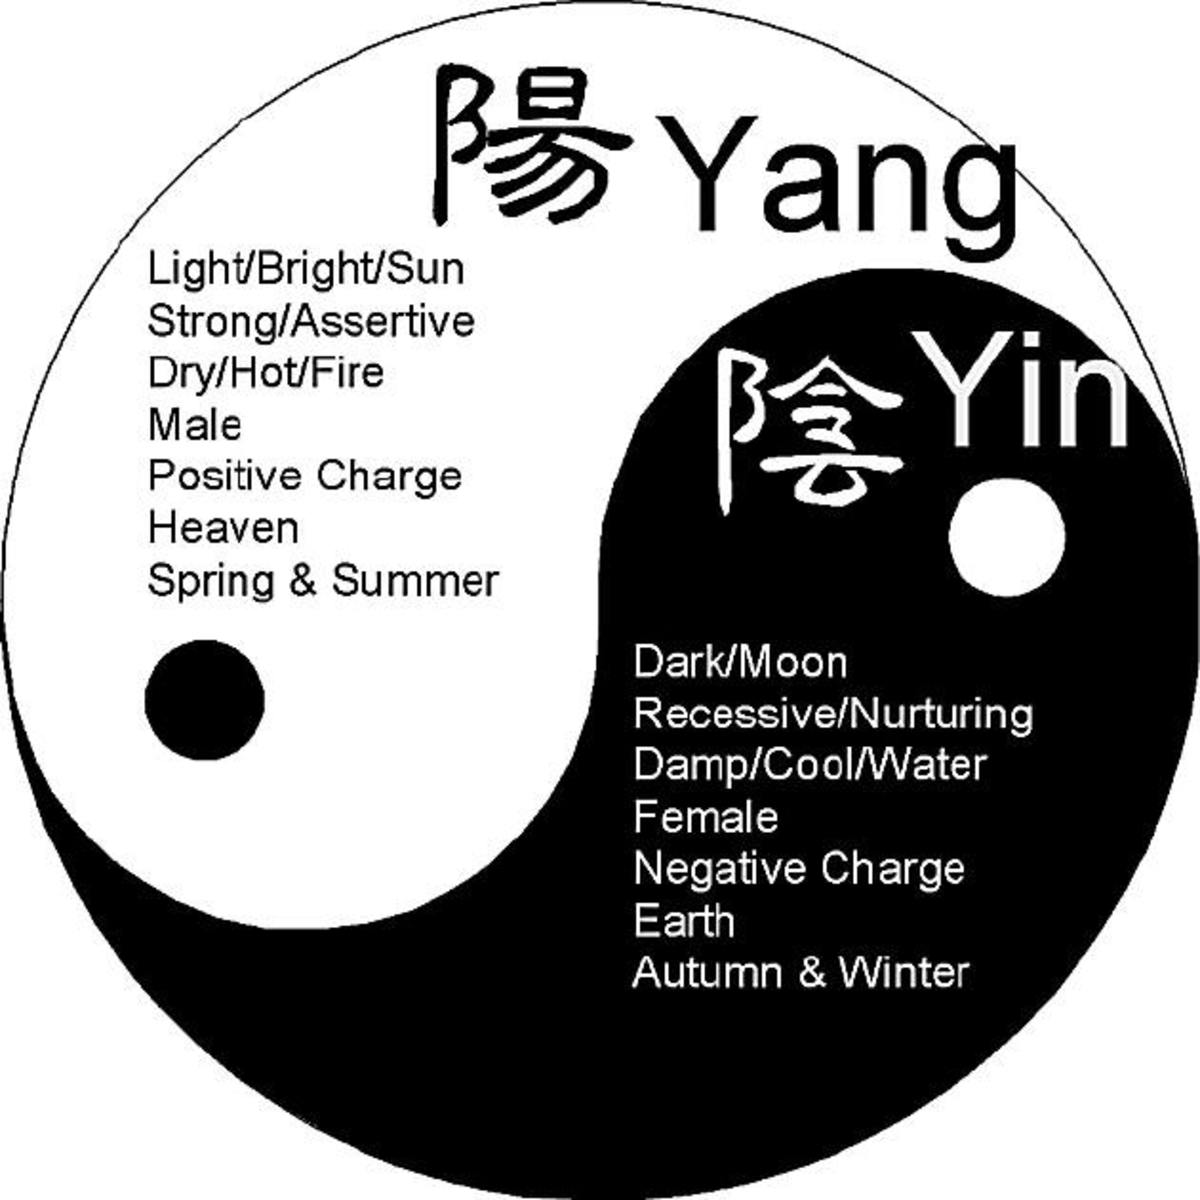 This is pretty nice. It gives other examples of the Yin and Yang.